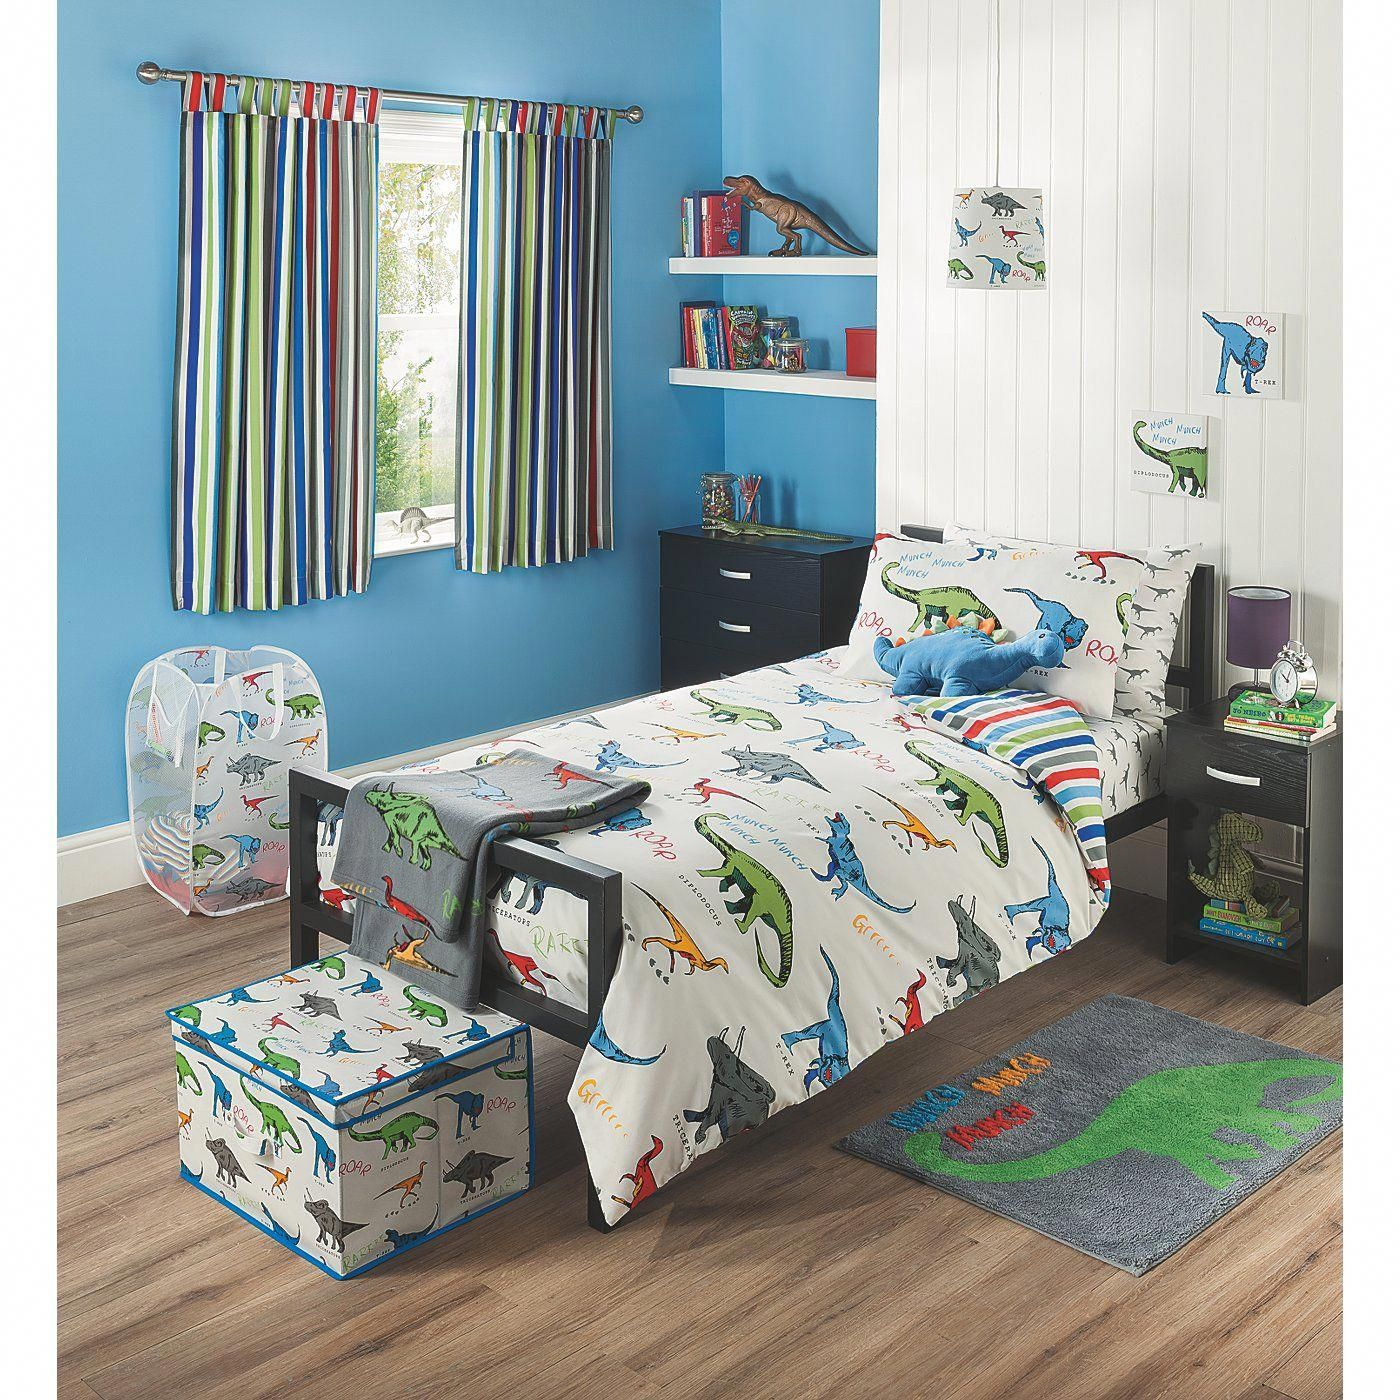 Buy George Home Dinosaurs Bedroom Range From Our Bedding Range